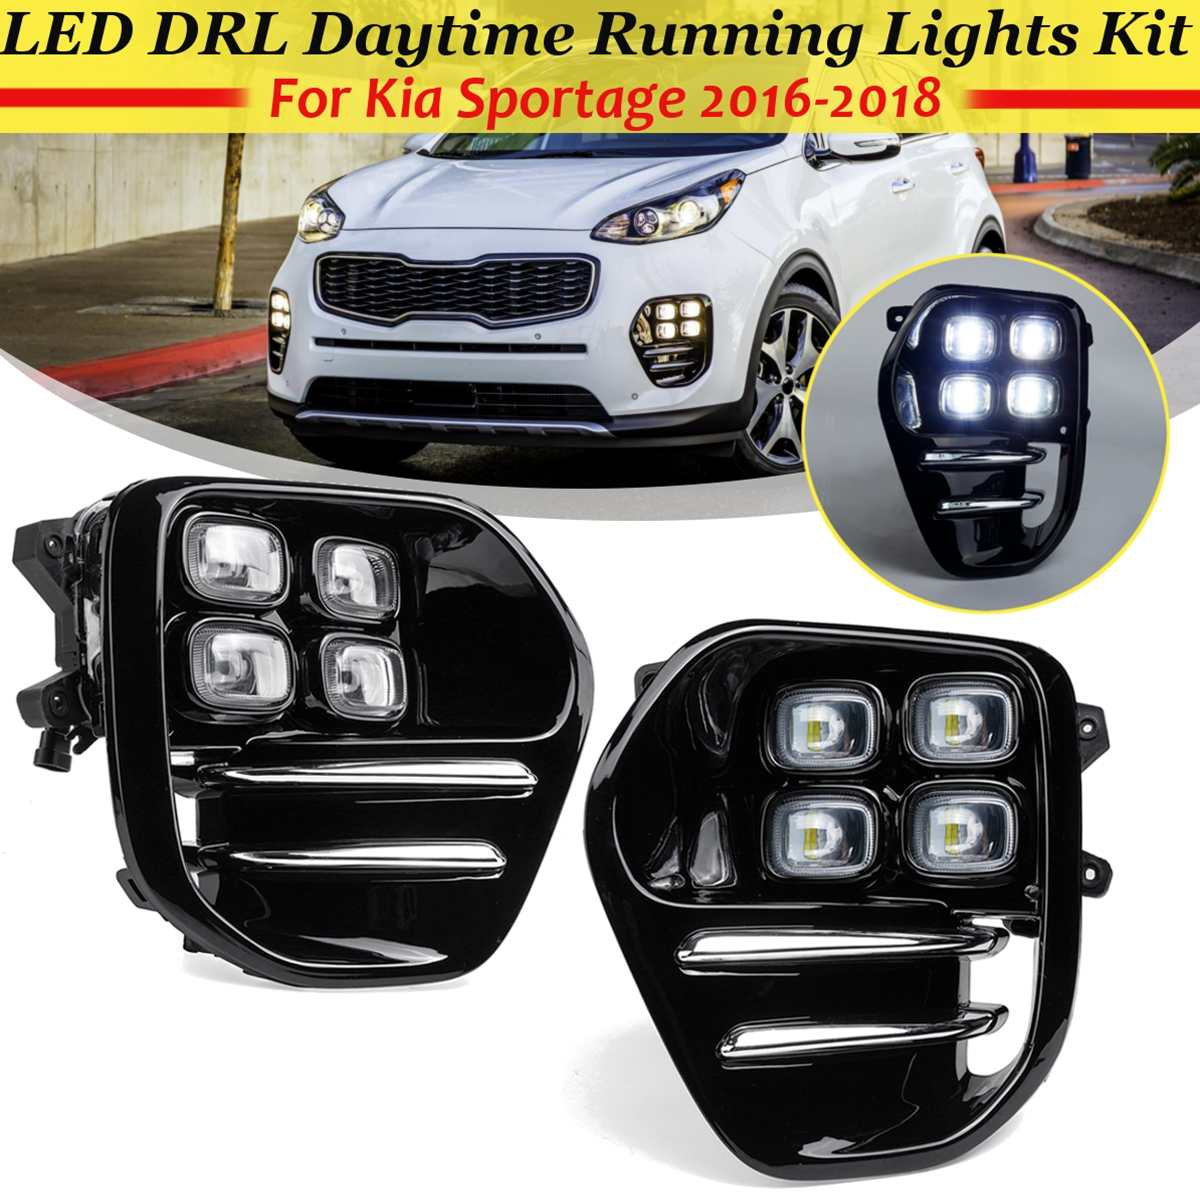 Pair Car LED DRL Daytime Running Light With Cove Grill For Kia Sportage QL 2016 2017 2018 Auto White Driving DRL Light Styling